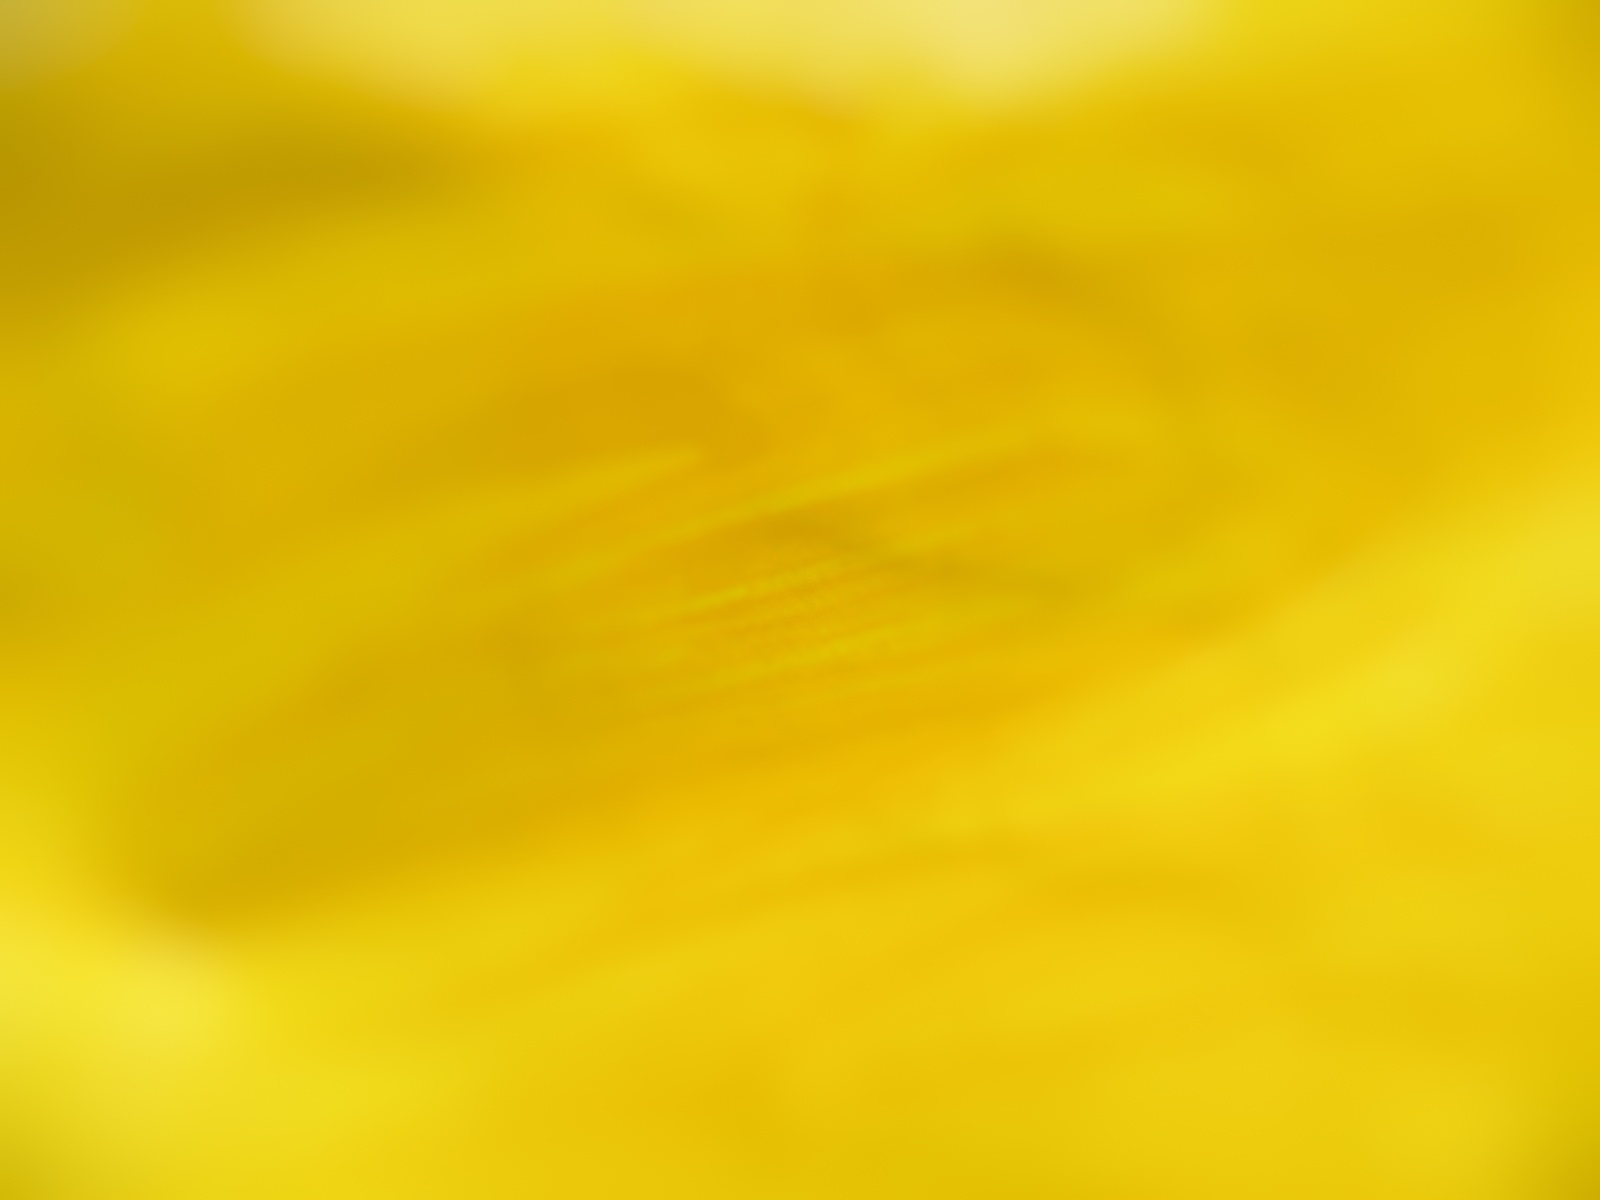 yellow-color-surface-smeared-syntetic-1637614-01